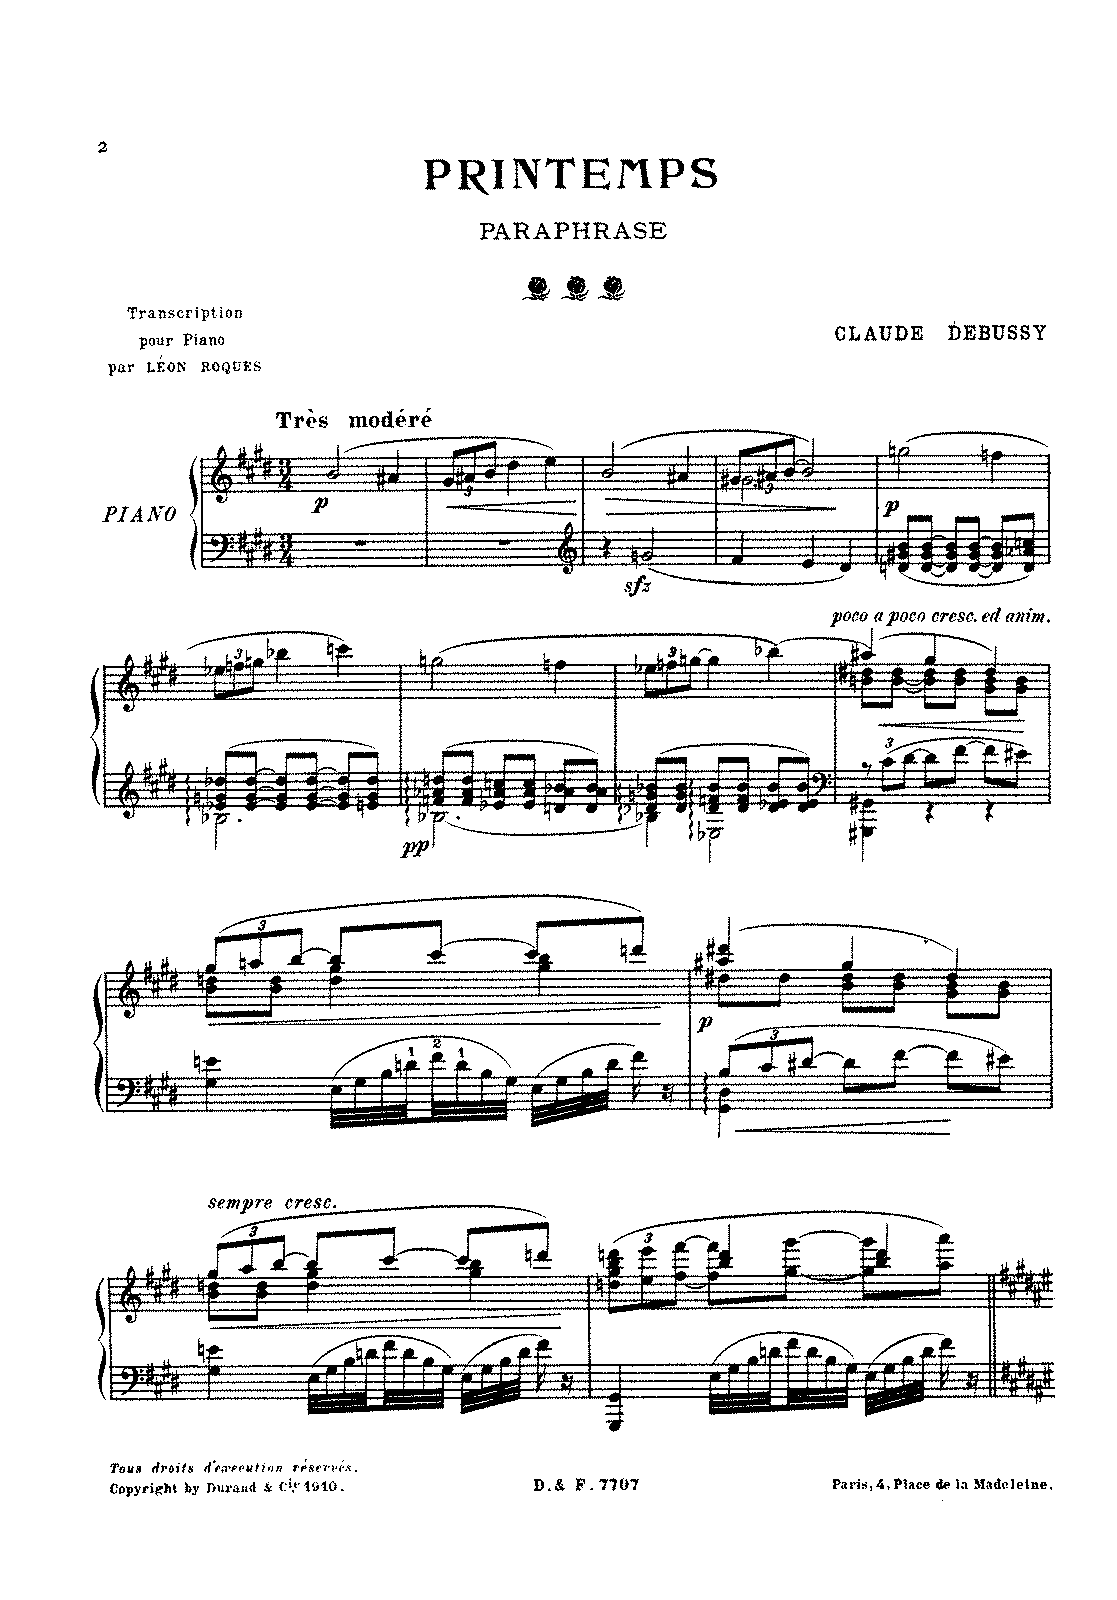 Debussy - Printemps (paraphrase by Roques - piano).pdf